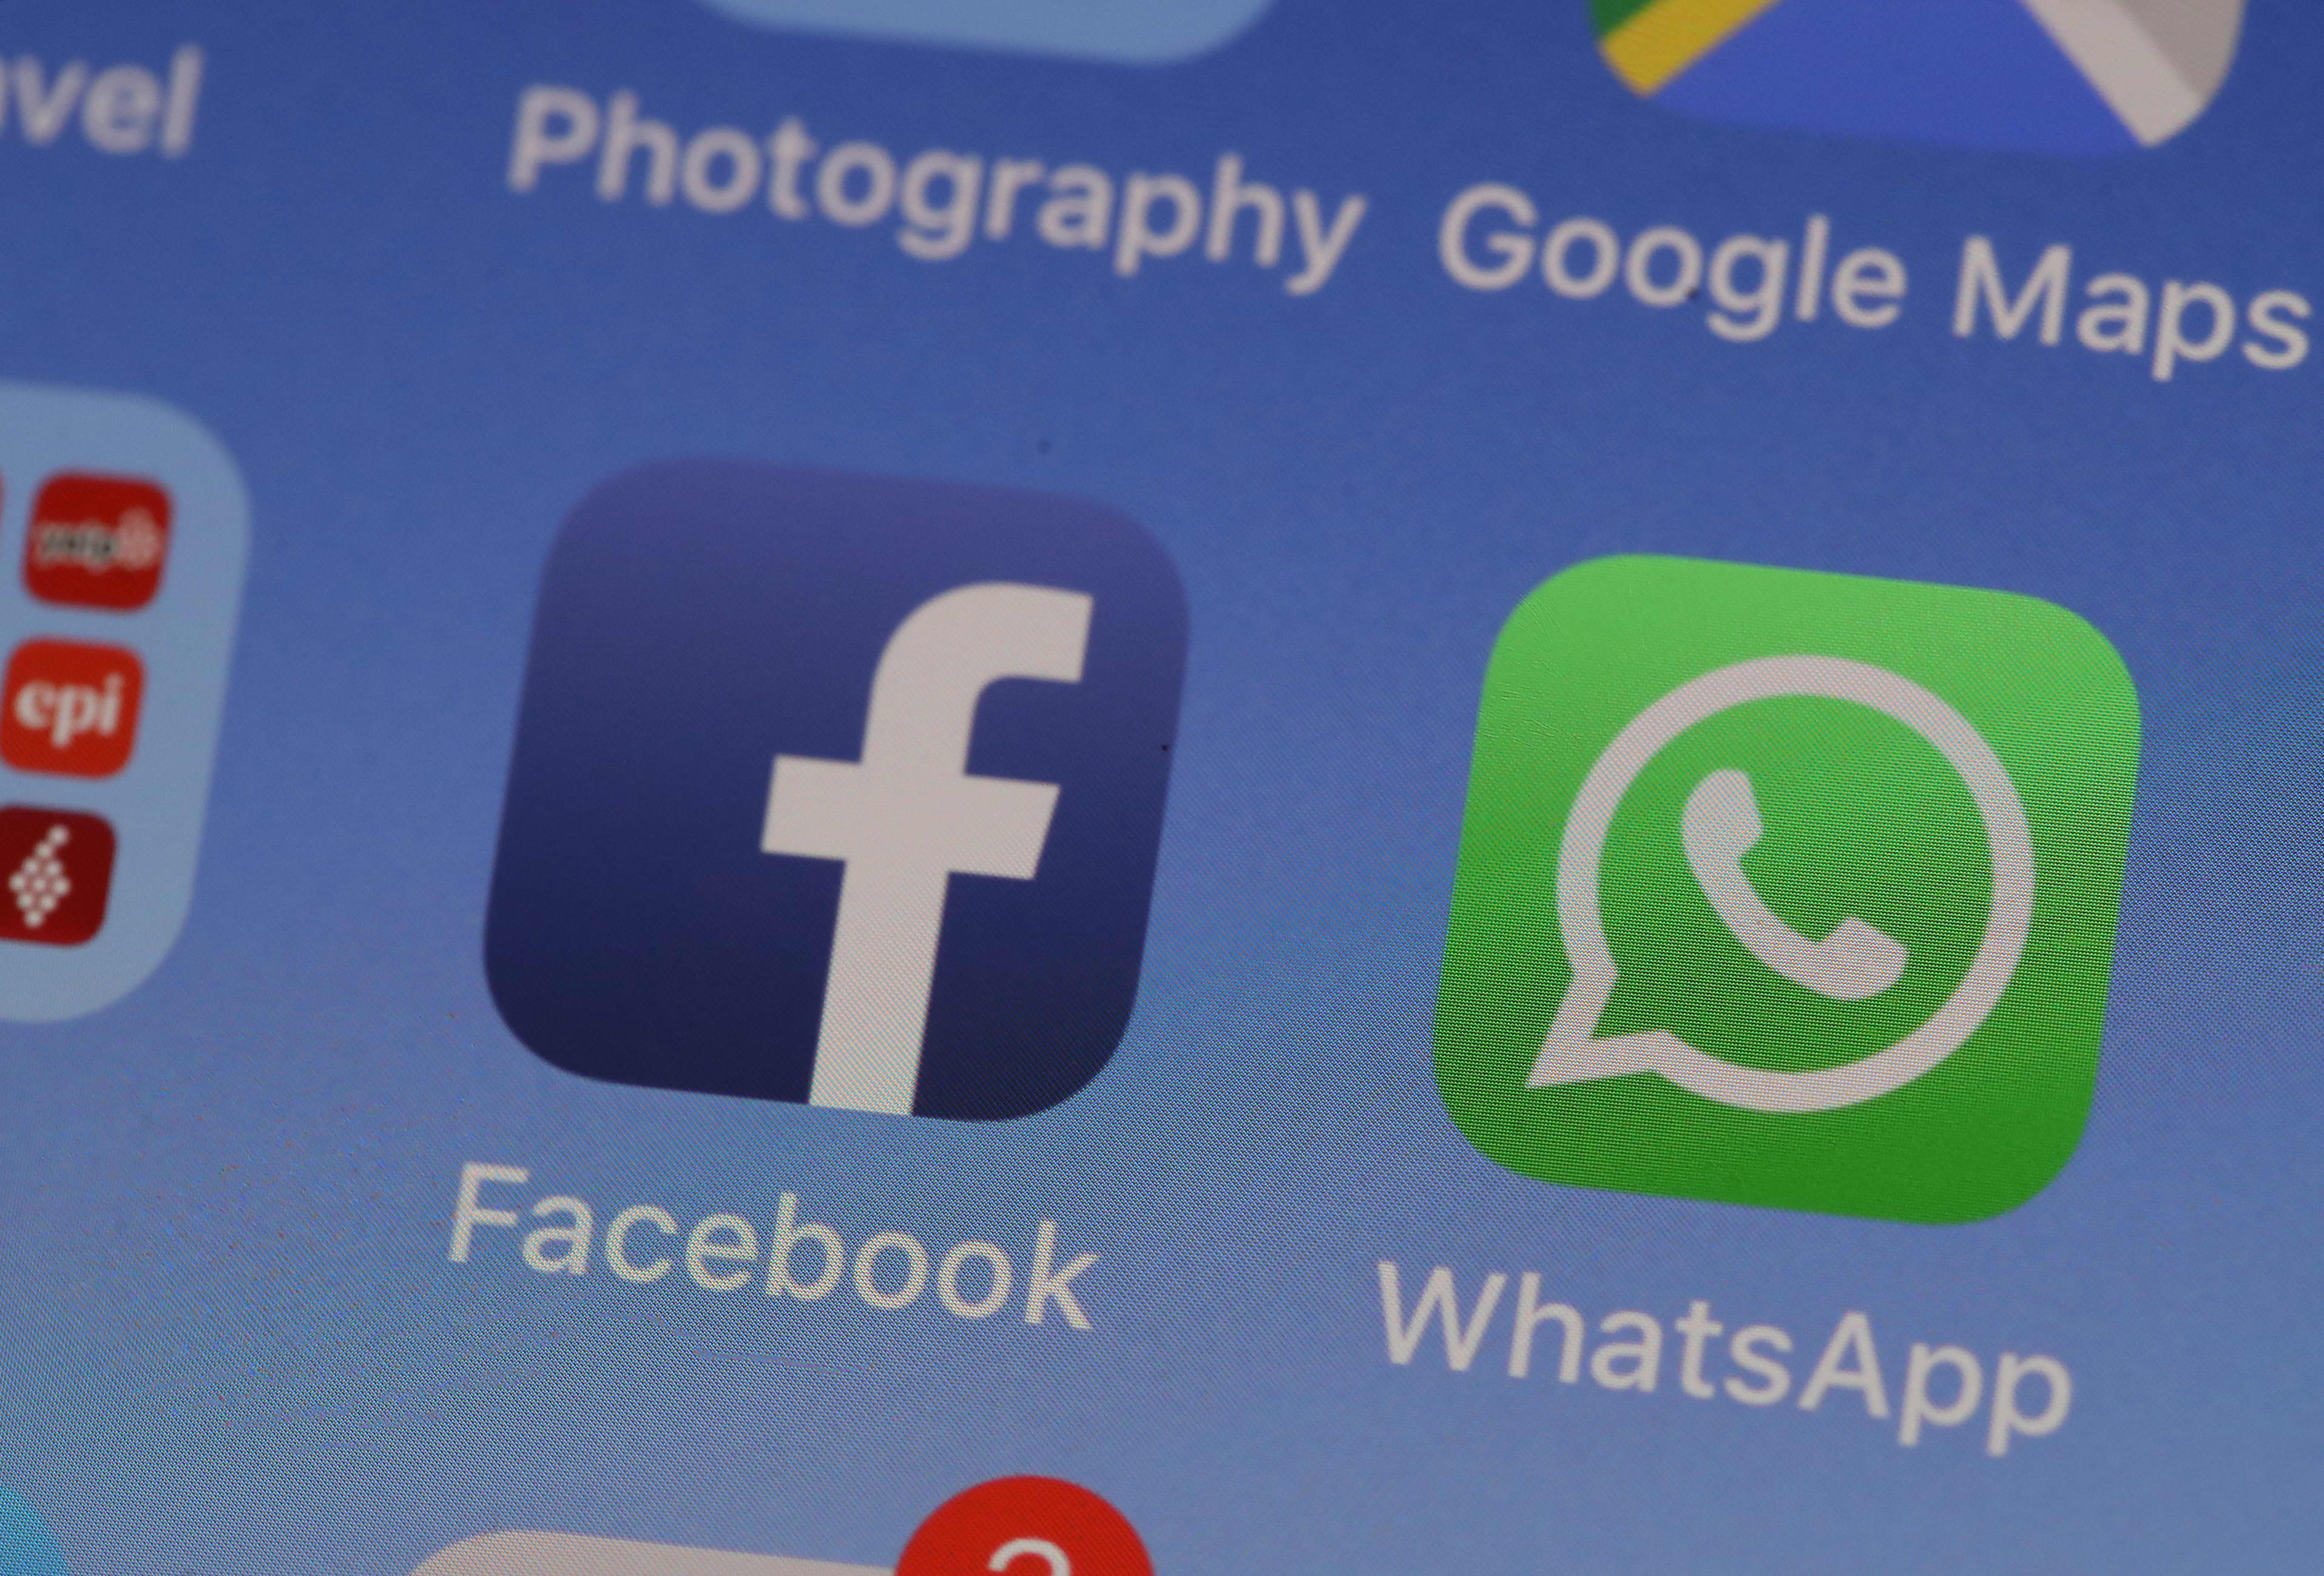 It's not just WhatsApp, most messaging apps likely have security vulnerabilities